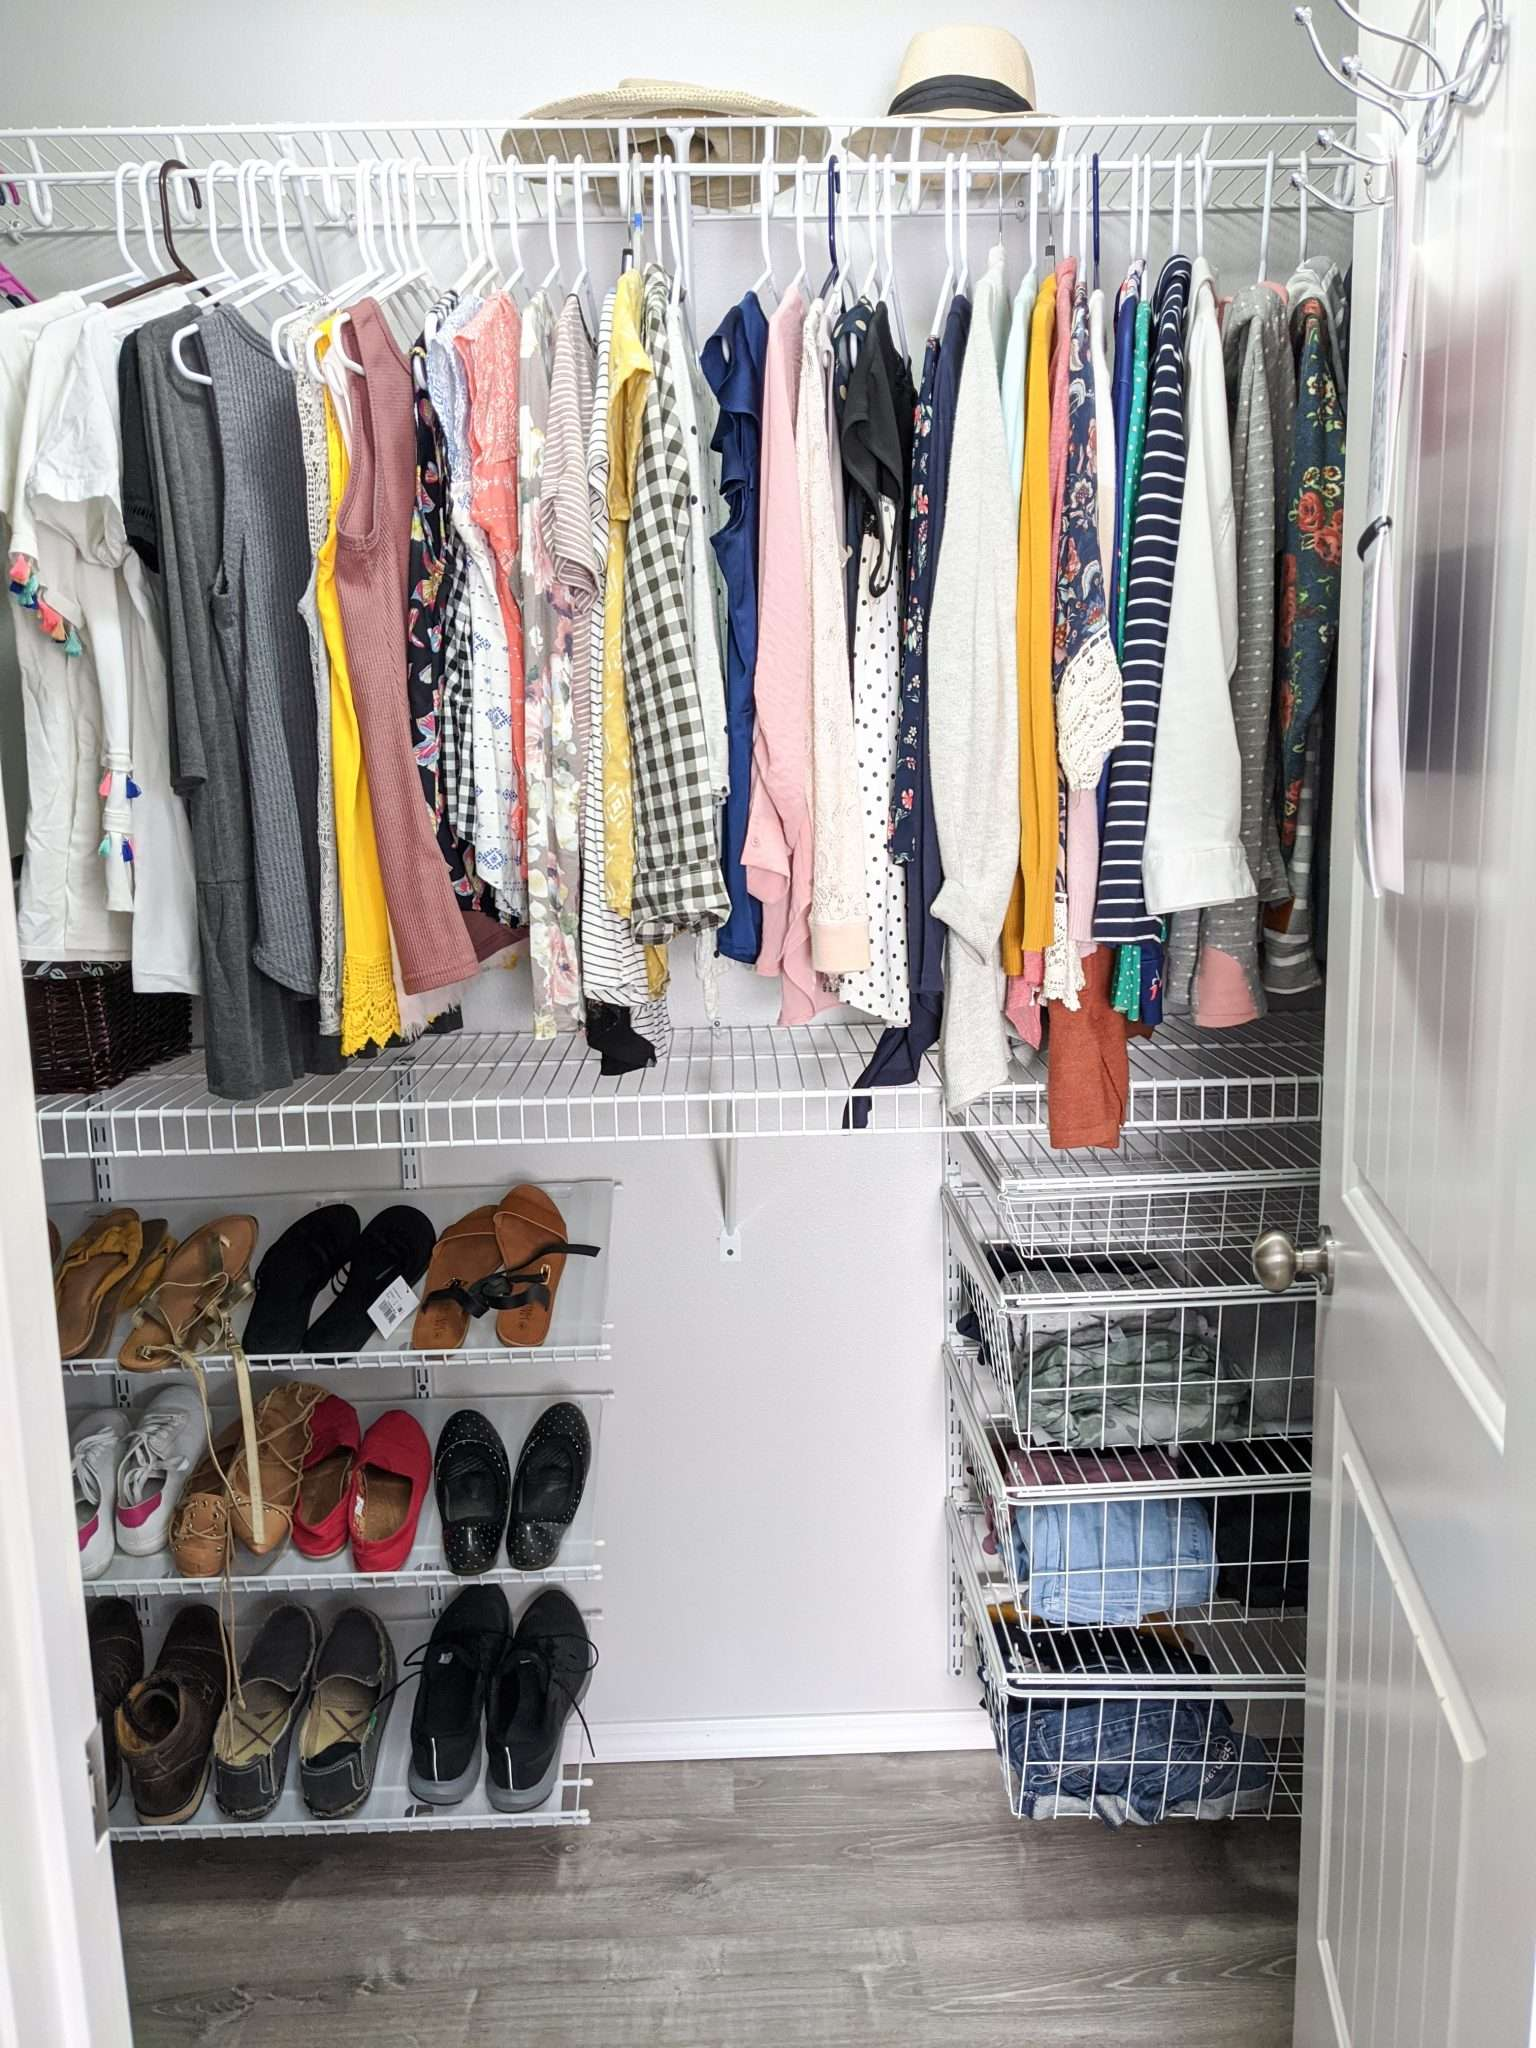 How to organize your closet. Easy method for arranging your tops in order of color versus print.